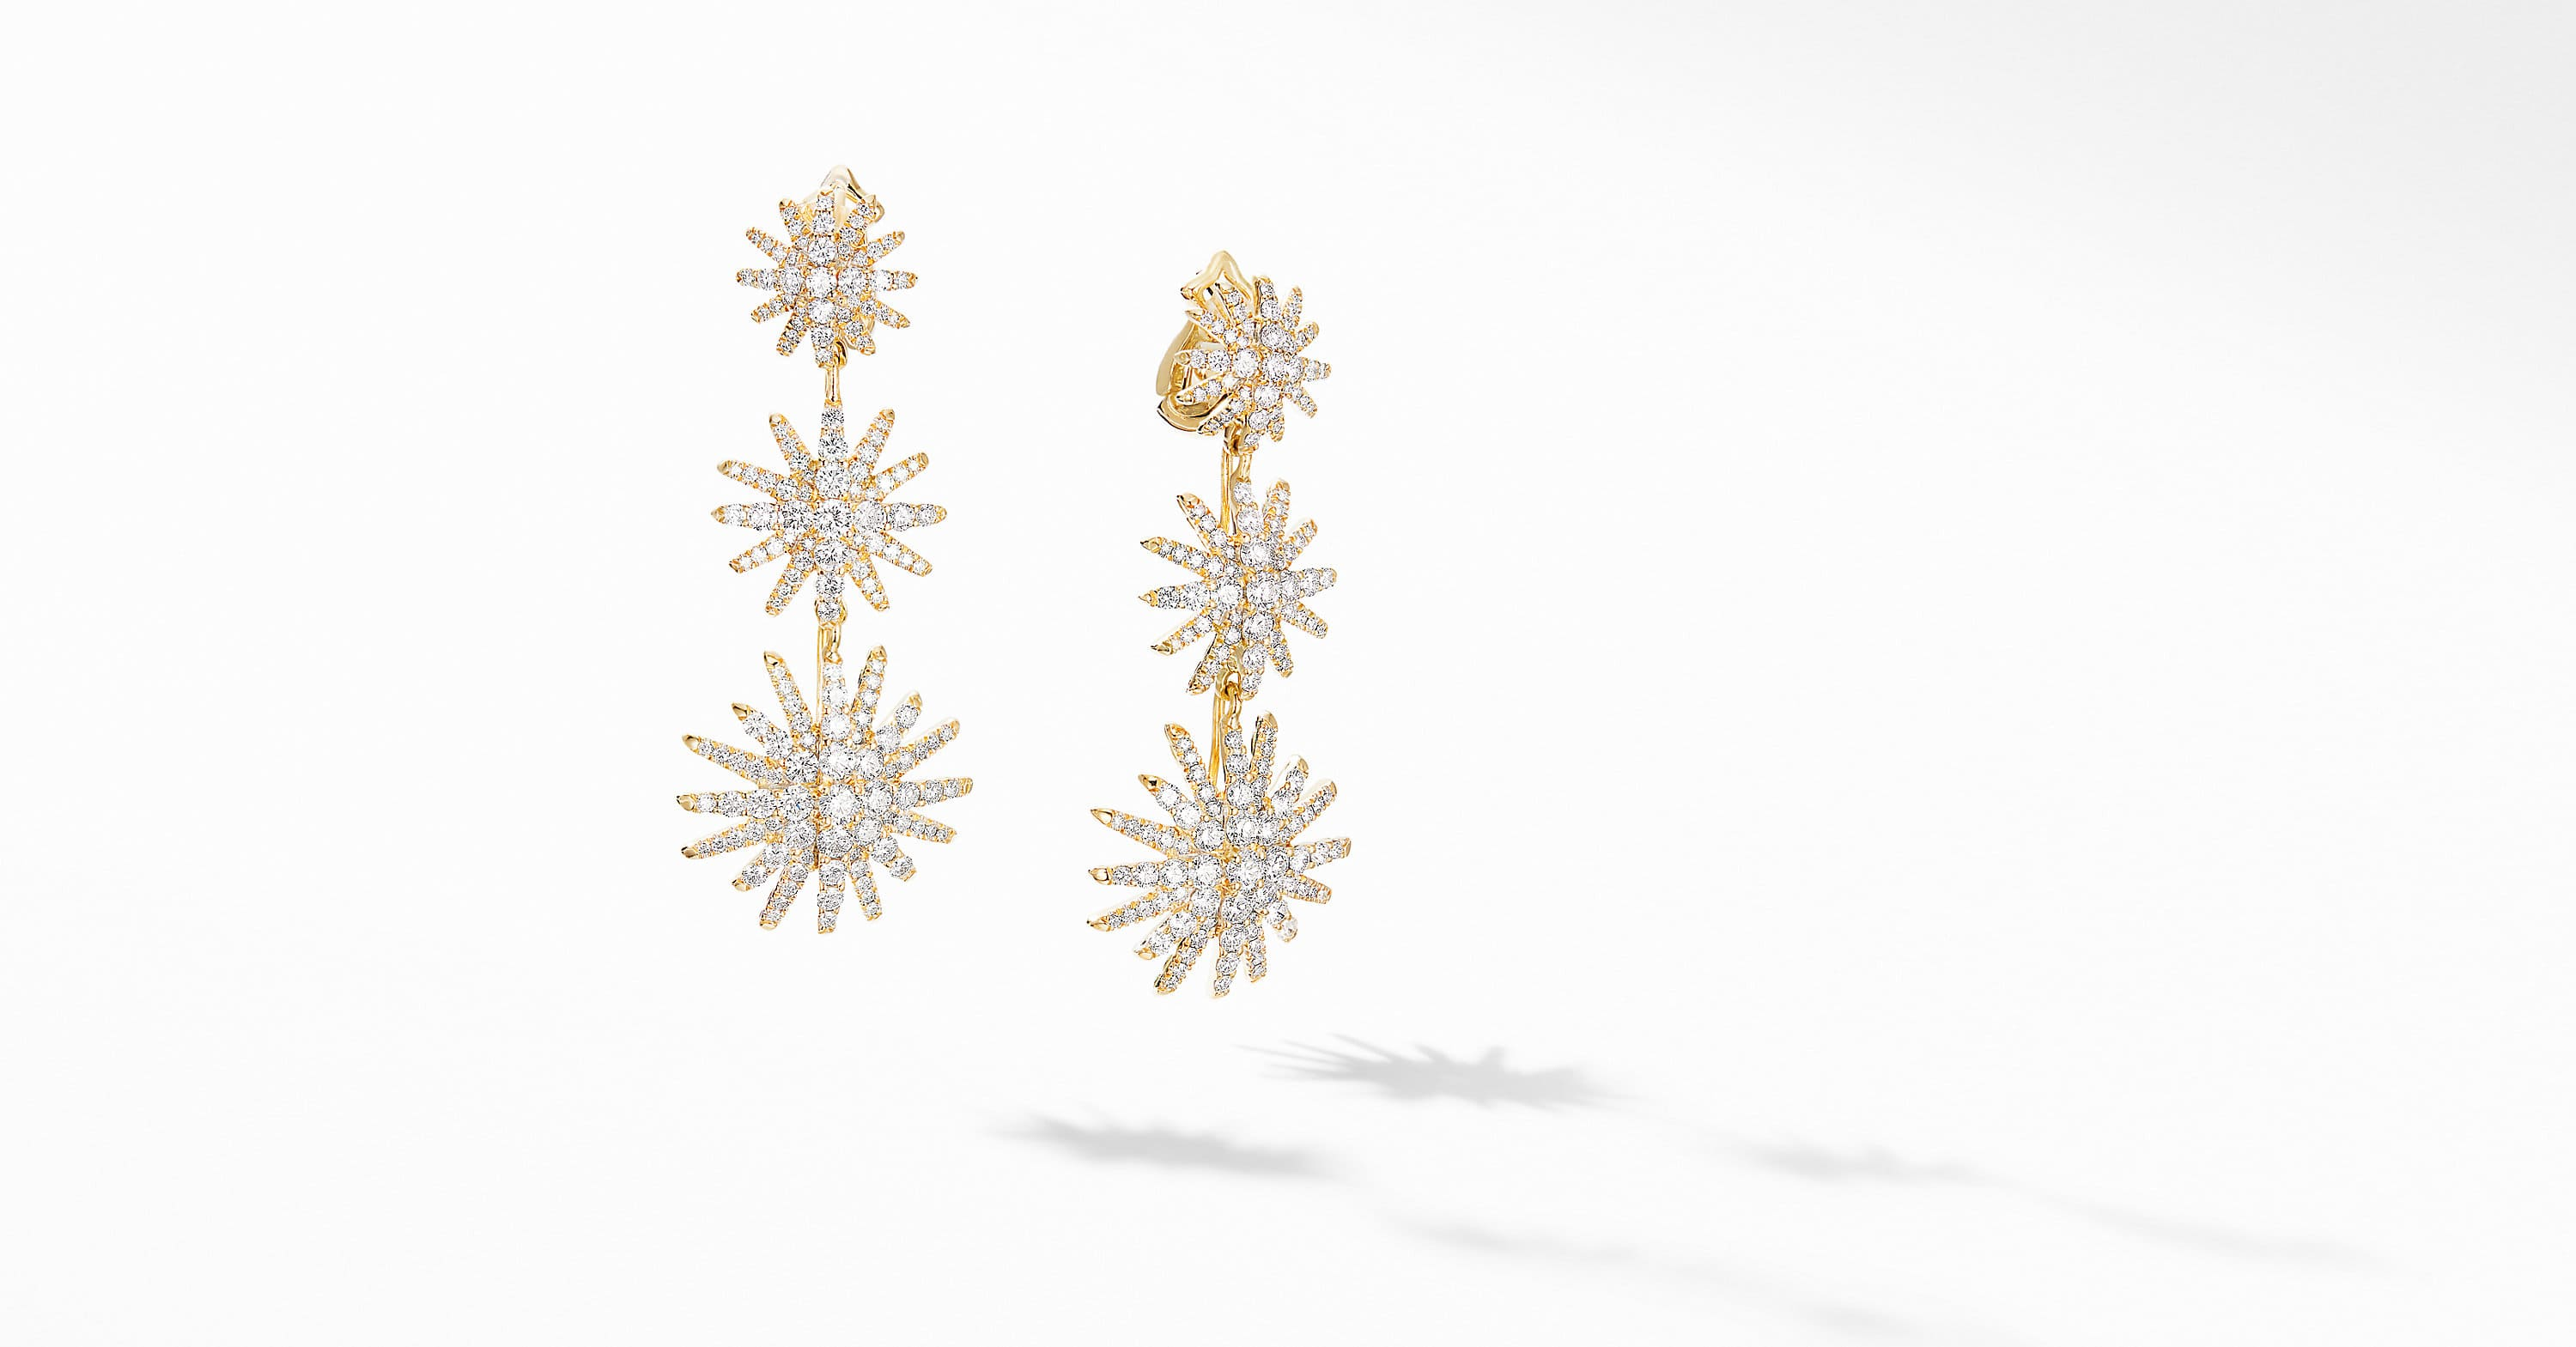 Starburst Triple Drop Earrings in 18K Yellow Gold with Diamonds